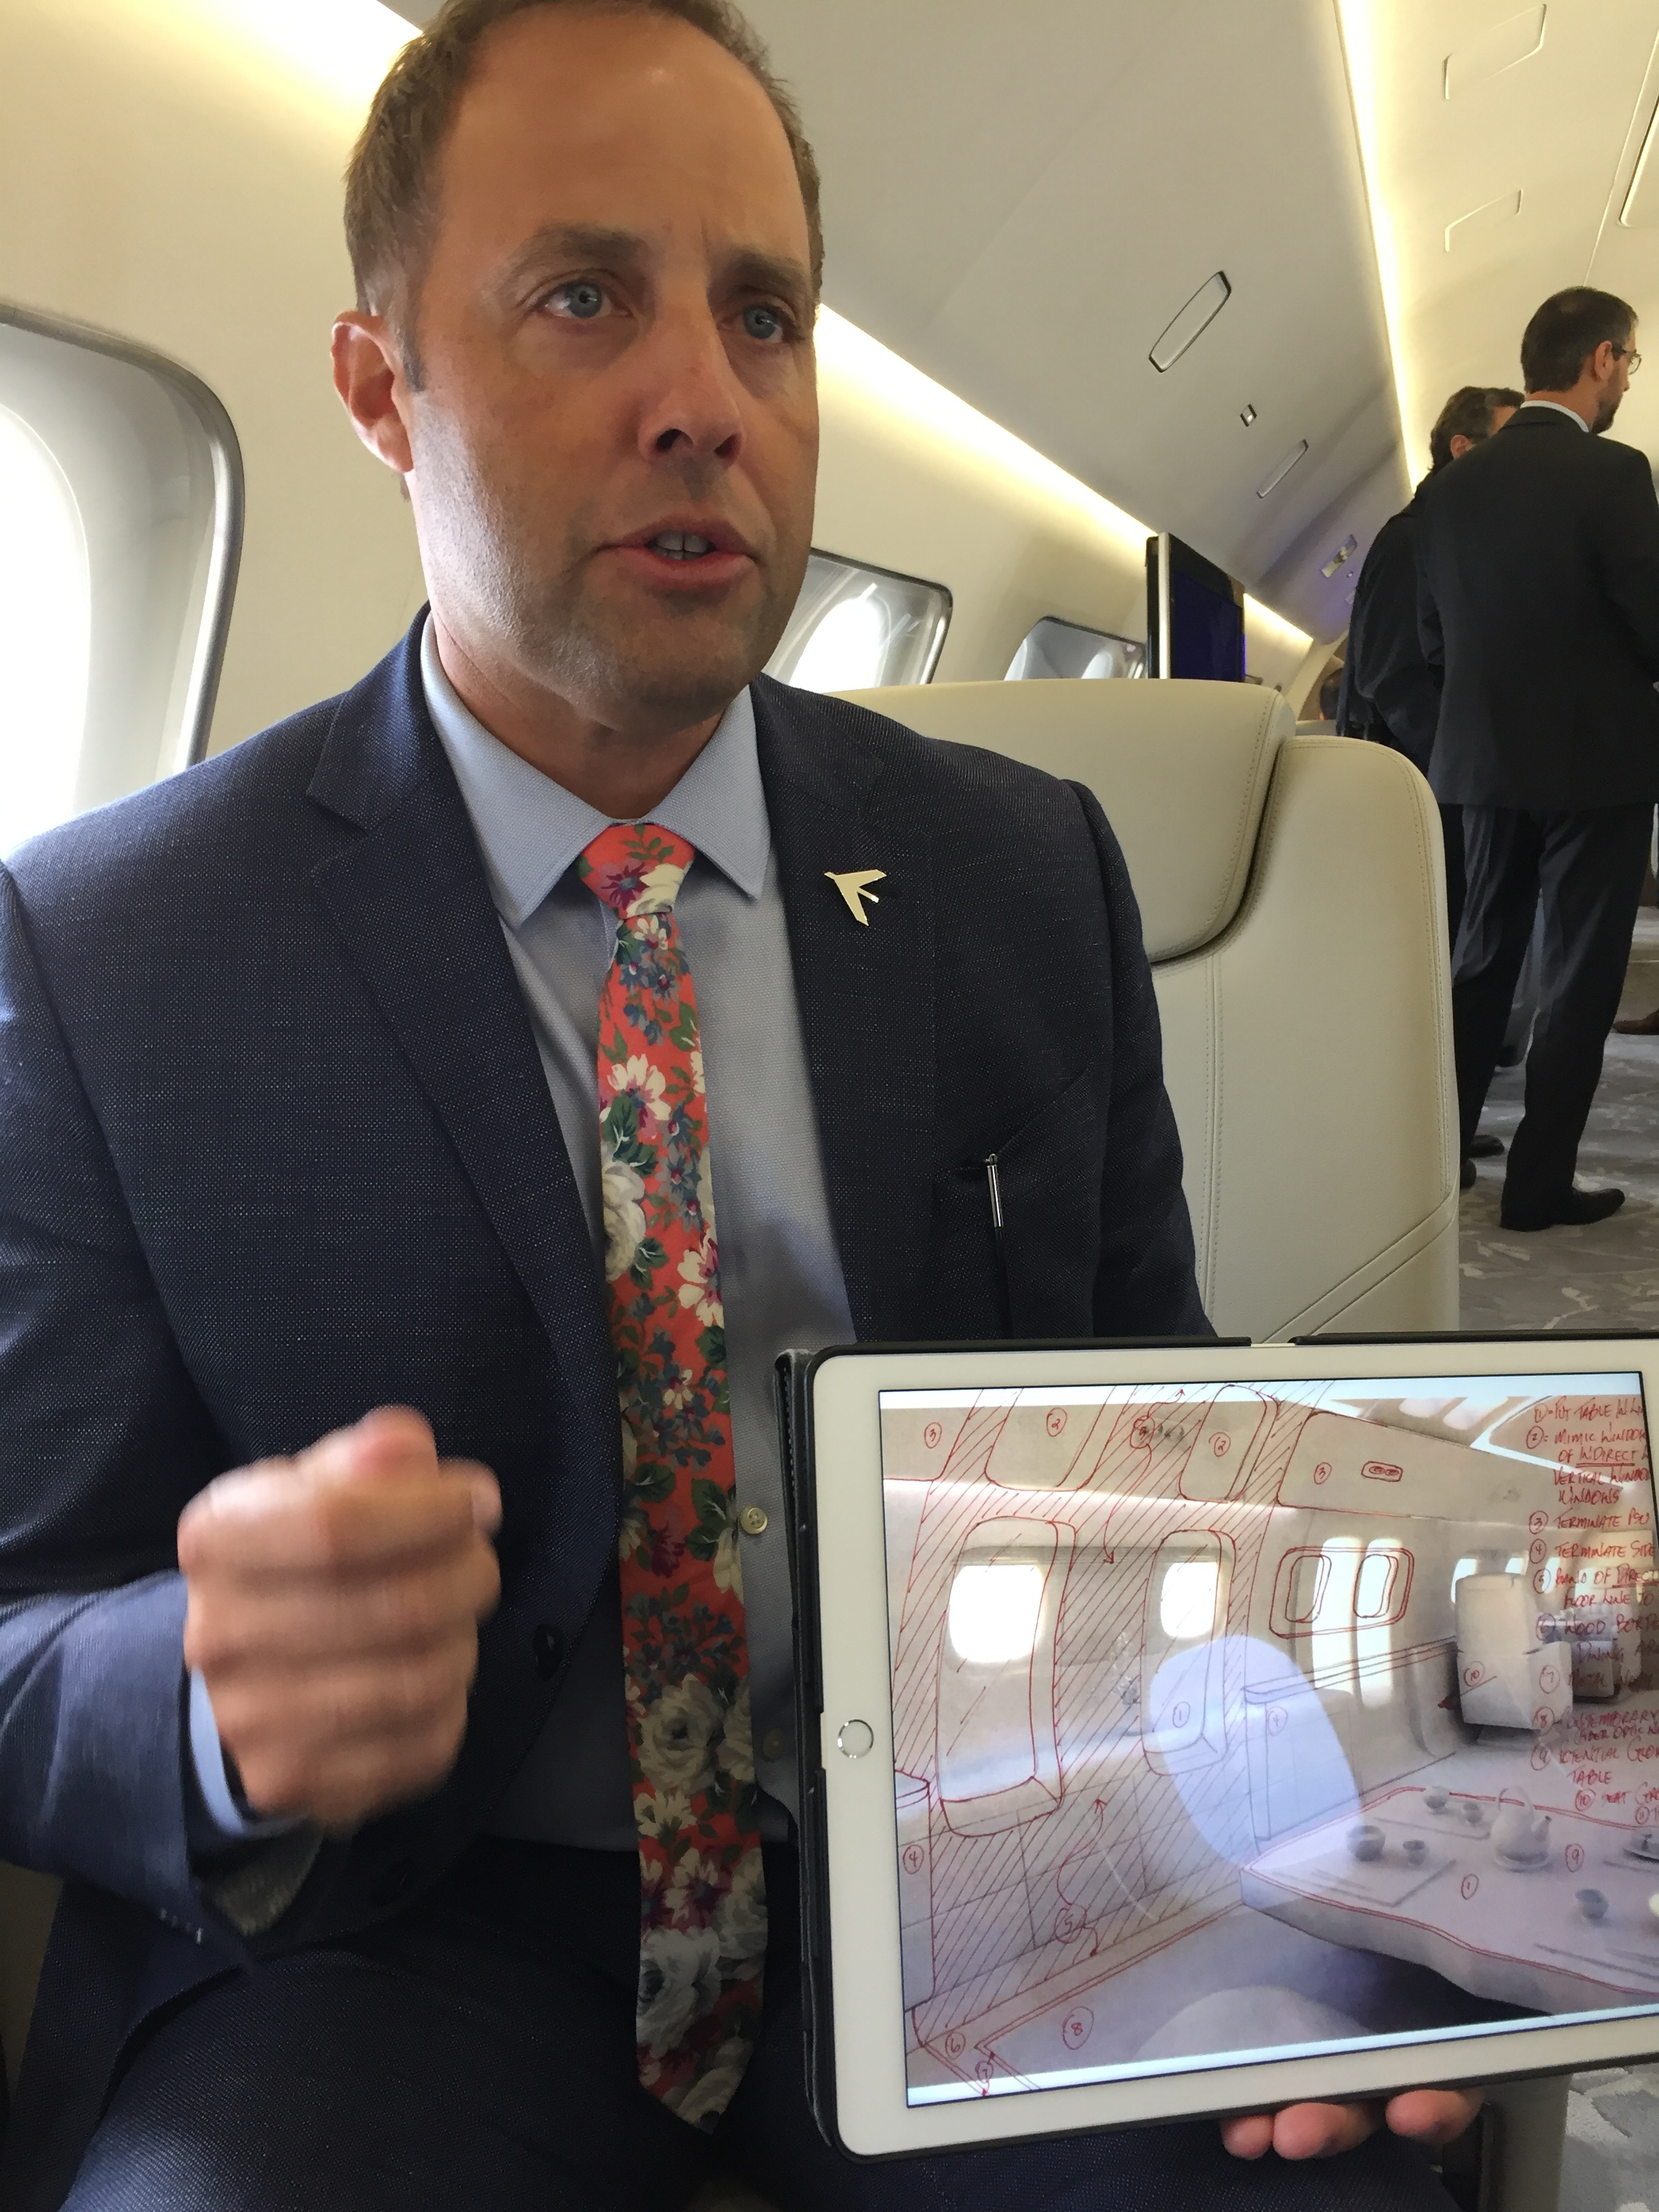 """Here, Jay Beever, Embraer's head of design shows a sketch of the """"Kyoto"""" cabin concept, a Japan-themed truly original cabin concept with oversized windows and Japanese tatamis"""